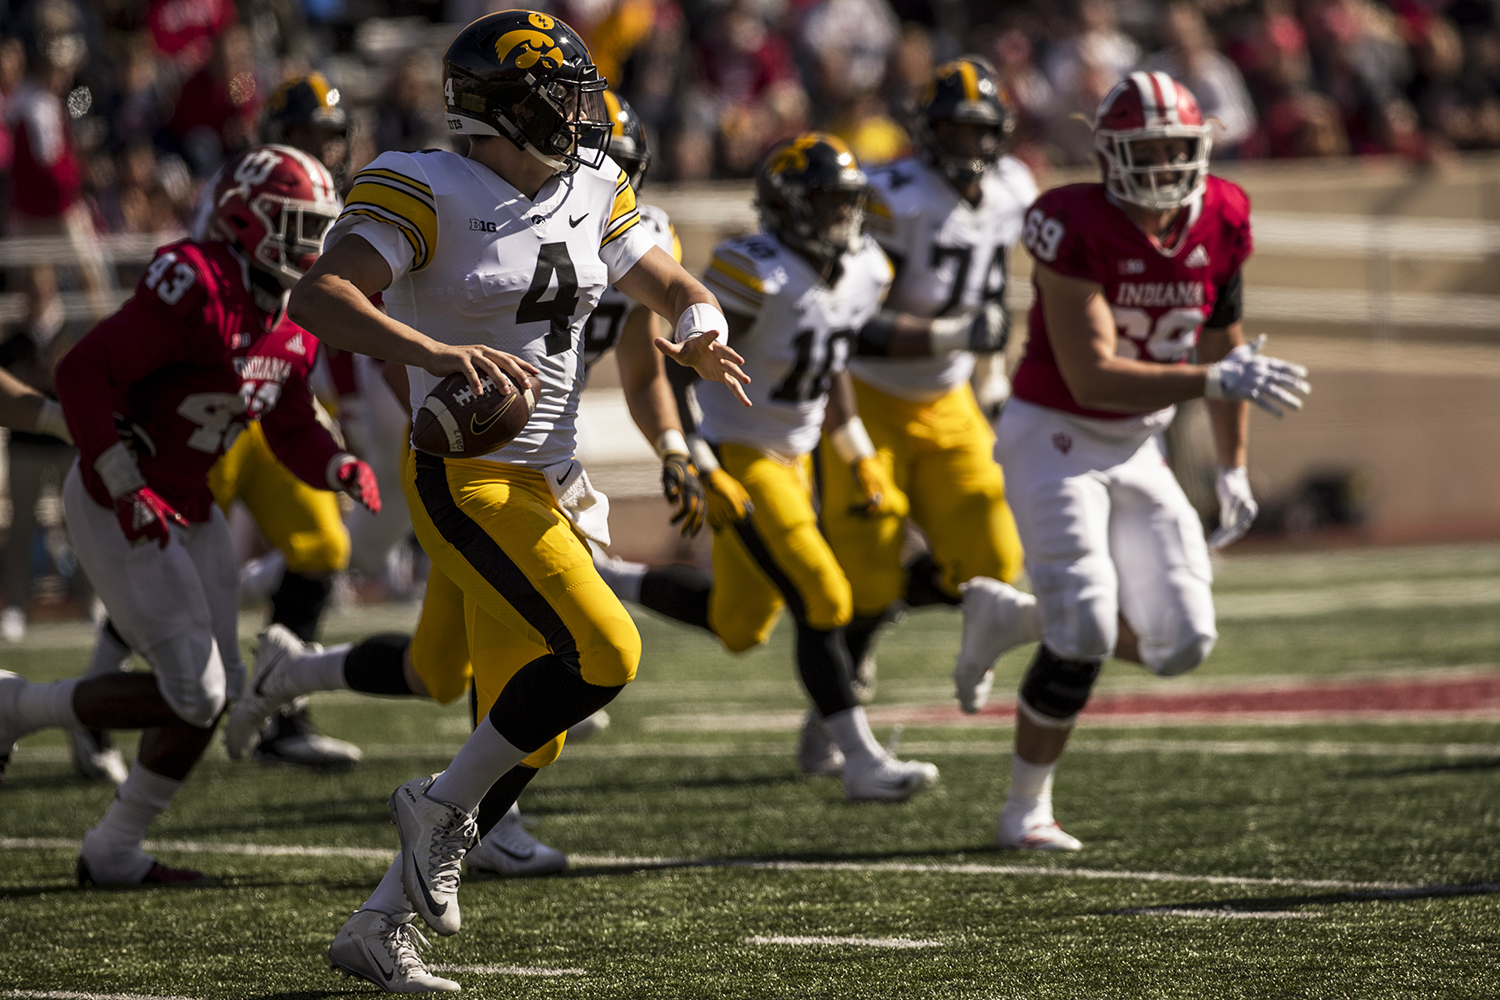 Iowa quarterback Nate Stanley throws on the run during Iowa's game against Indiana at Memorial Stadium in Bloomington on Saturday, October 13, 2018. The Hawkeyes defeated the Hoosiers 42-16.